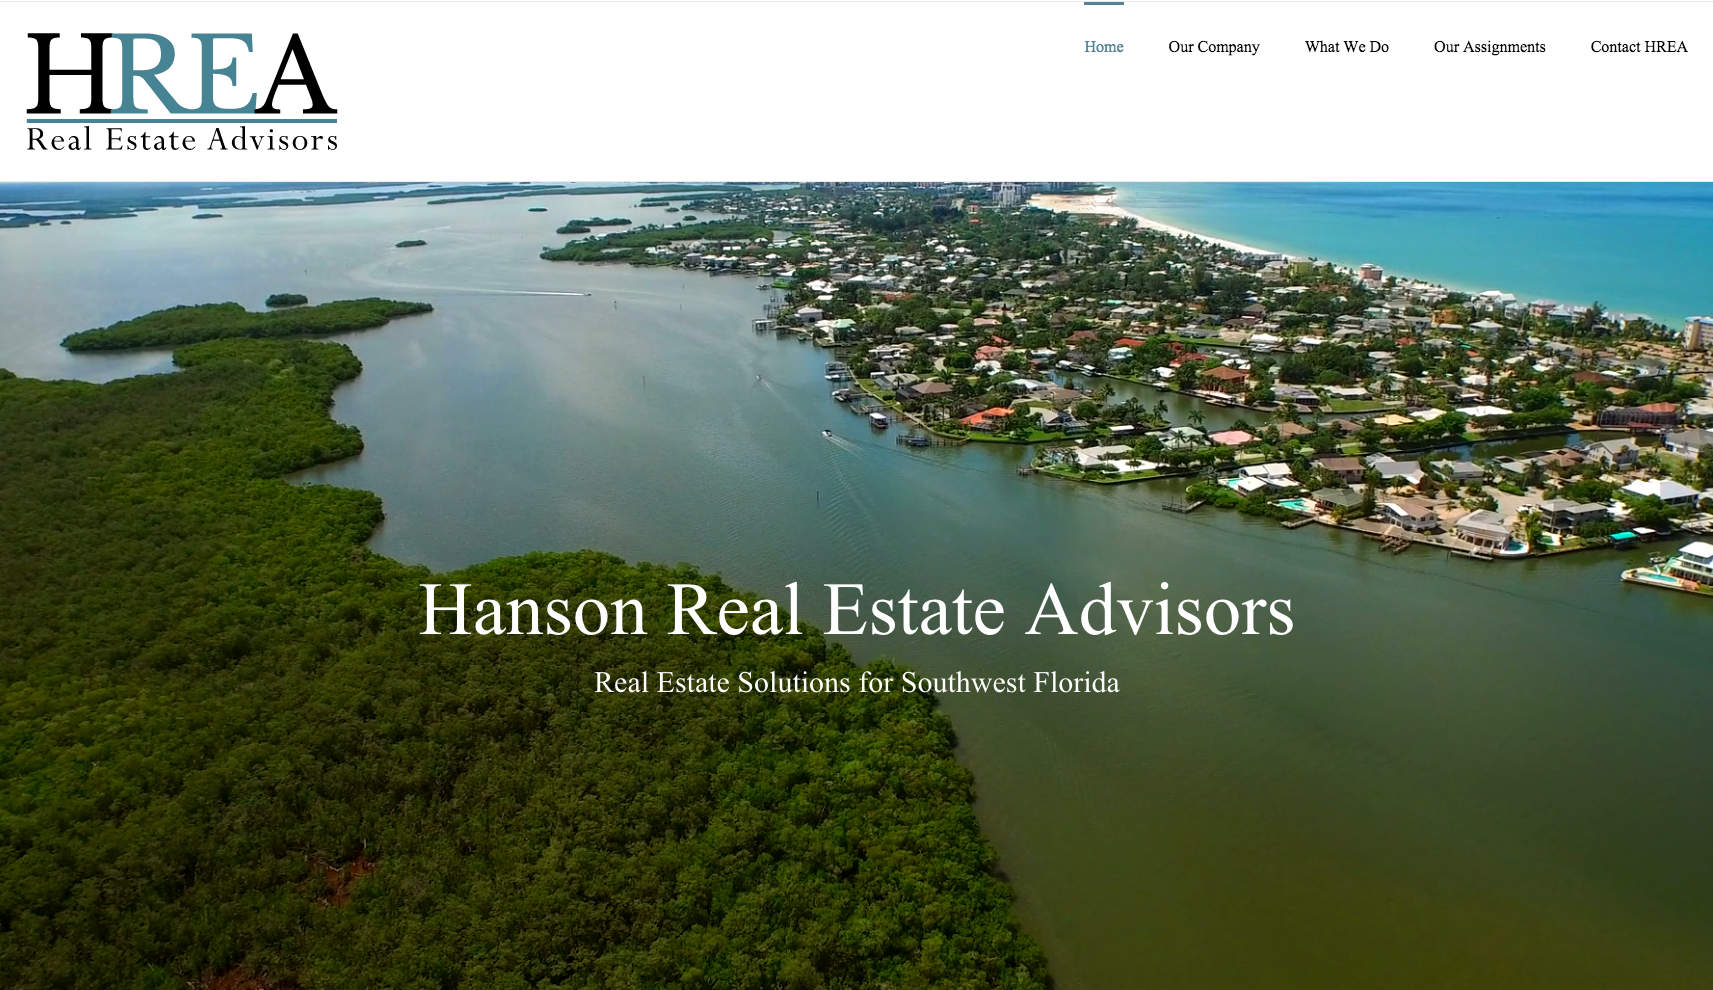 Hanson Real Estate Advisors